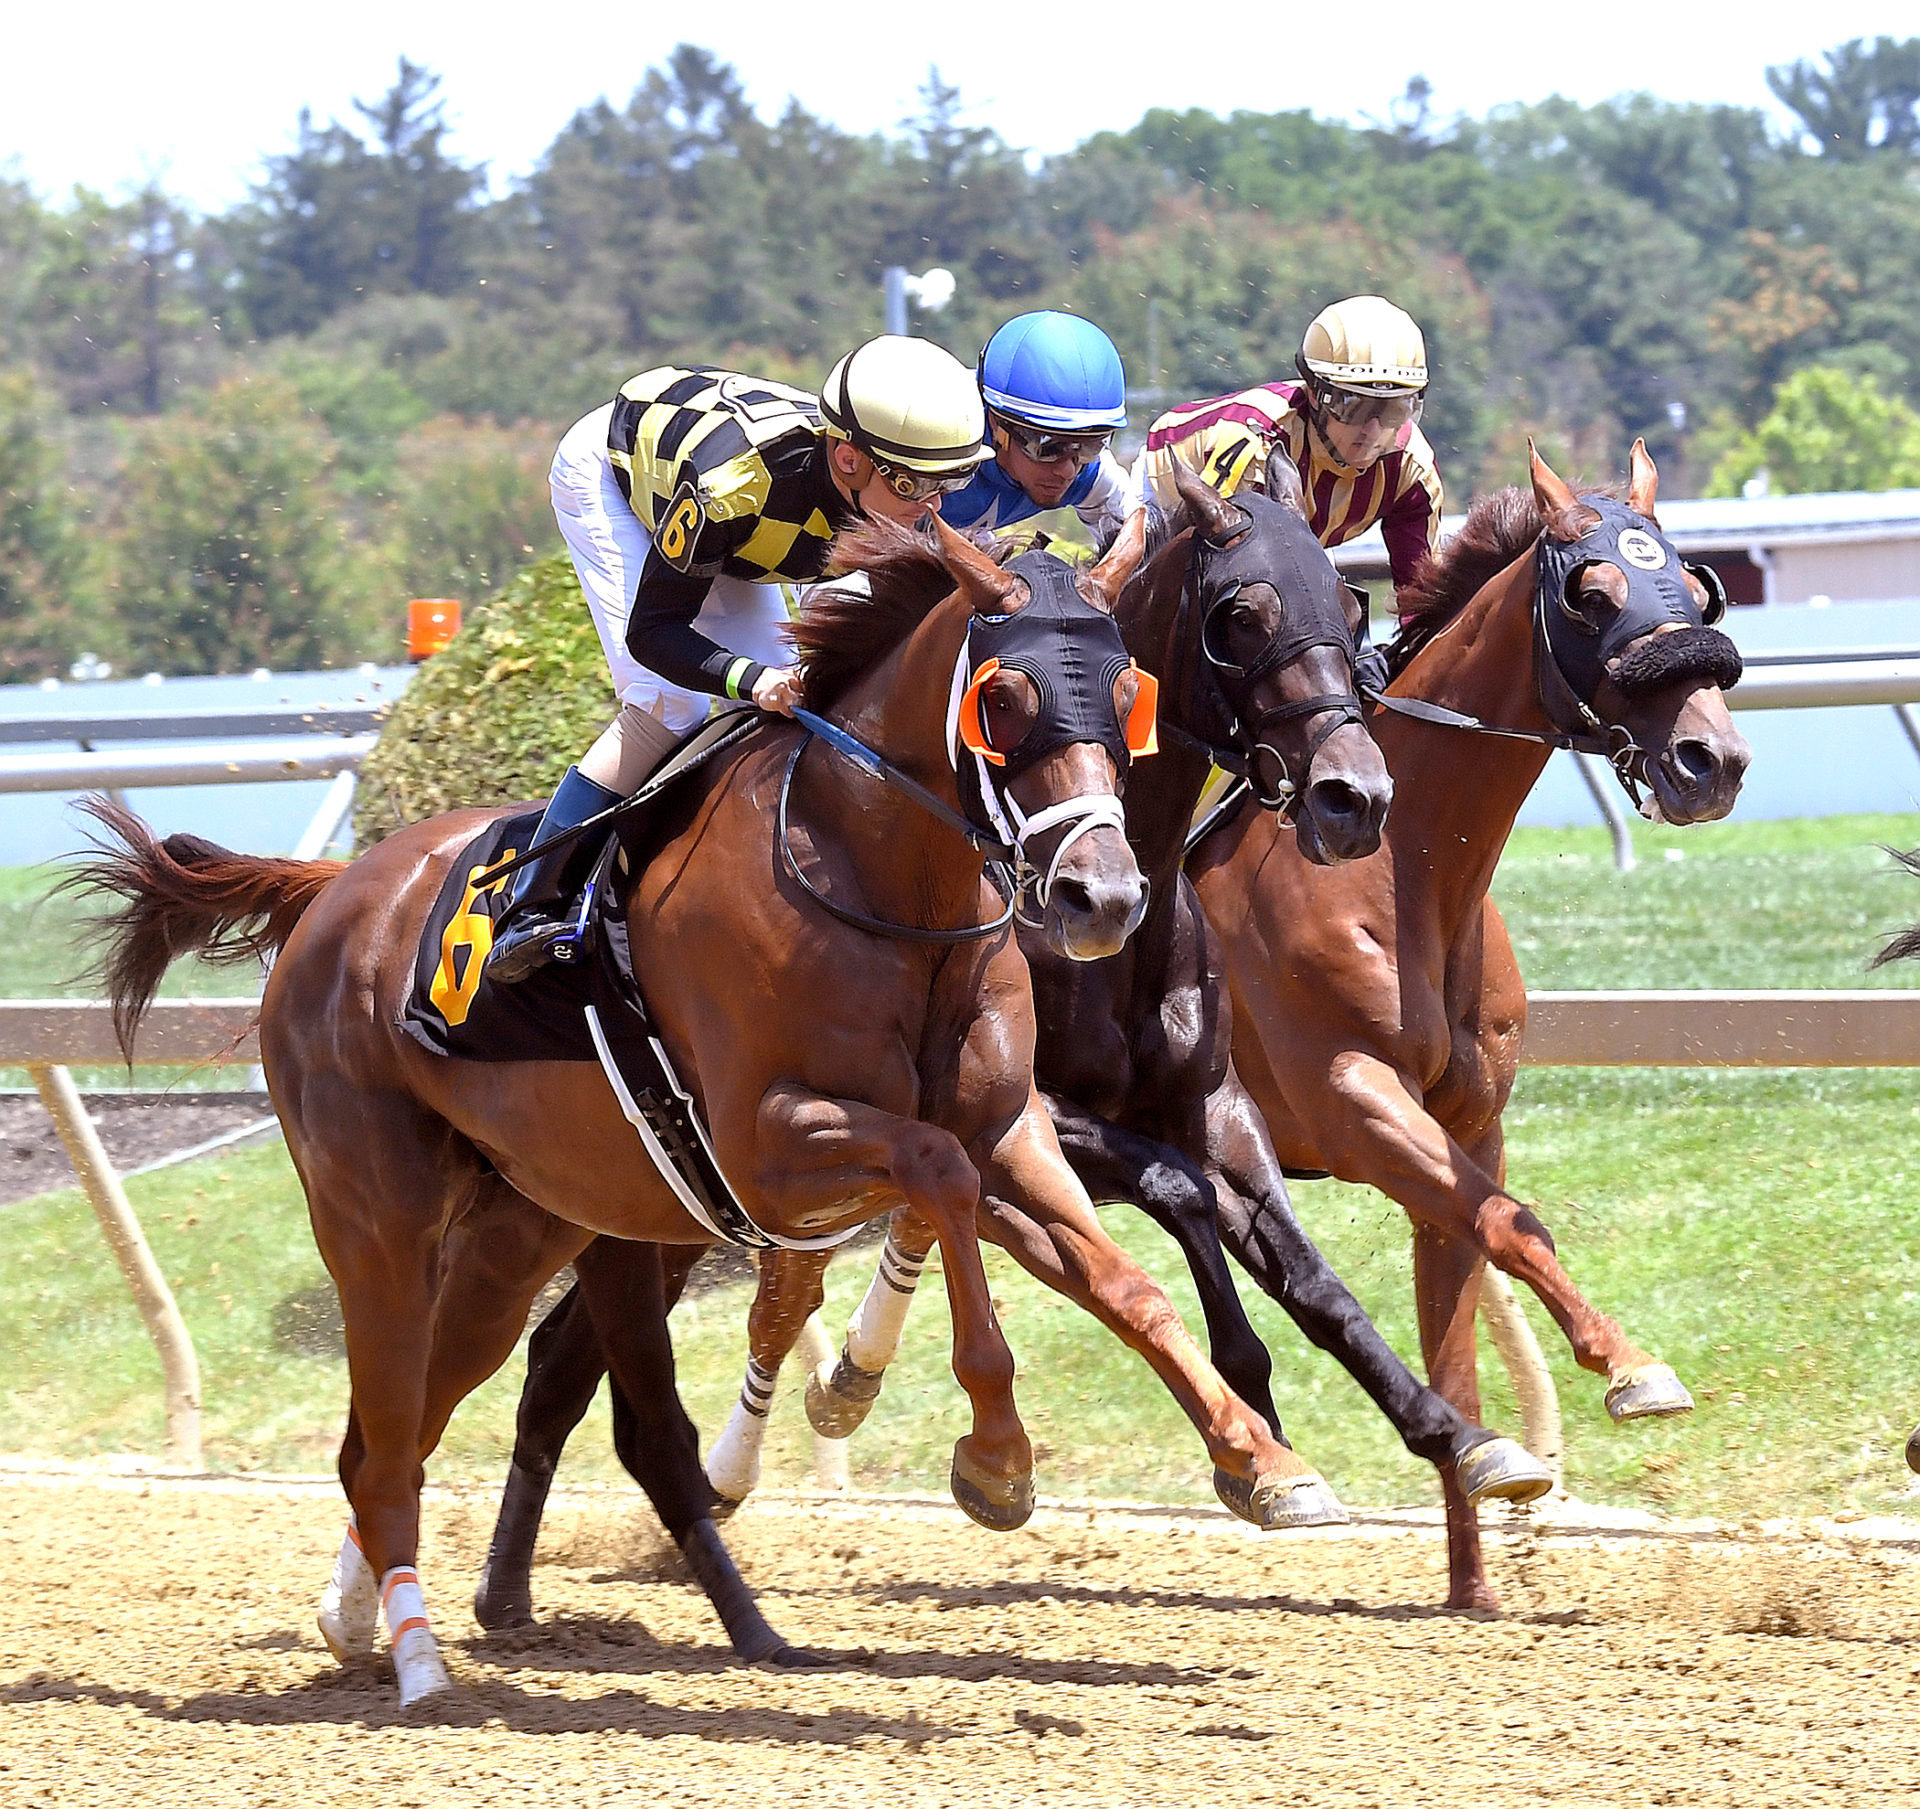 Next round of stakes at Pimlico attracts 67 nominations